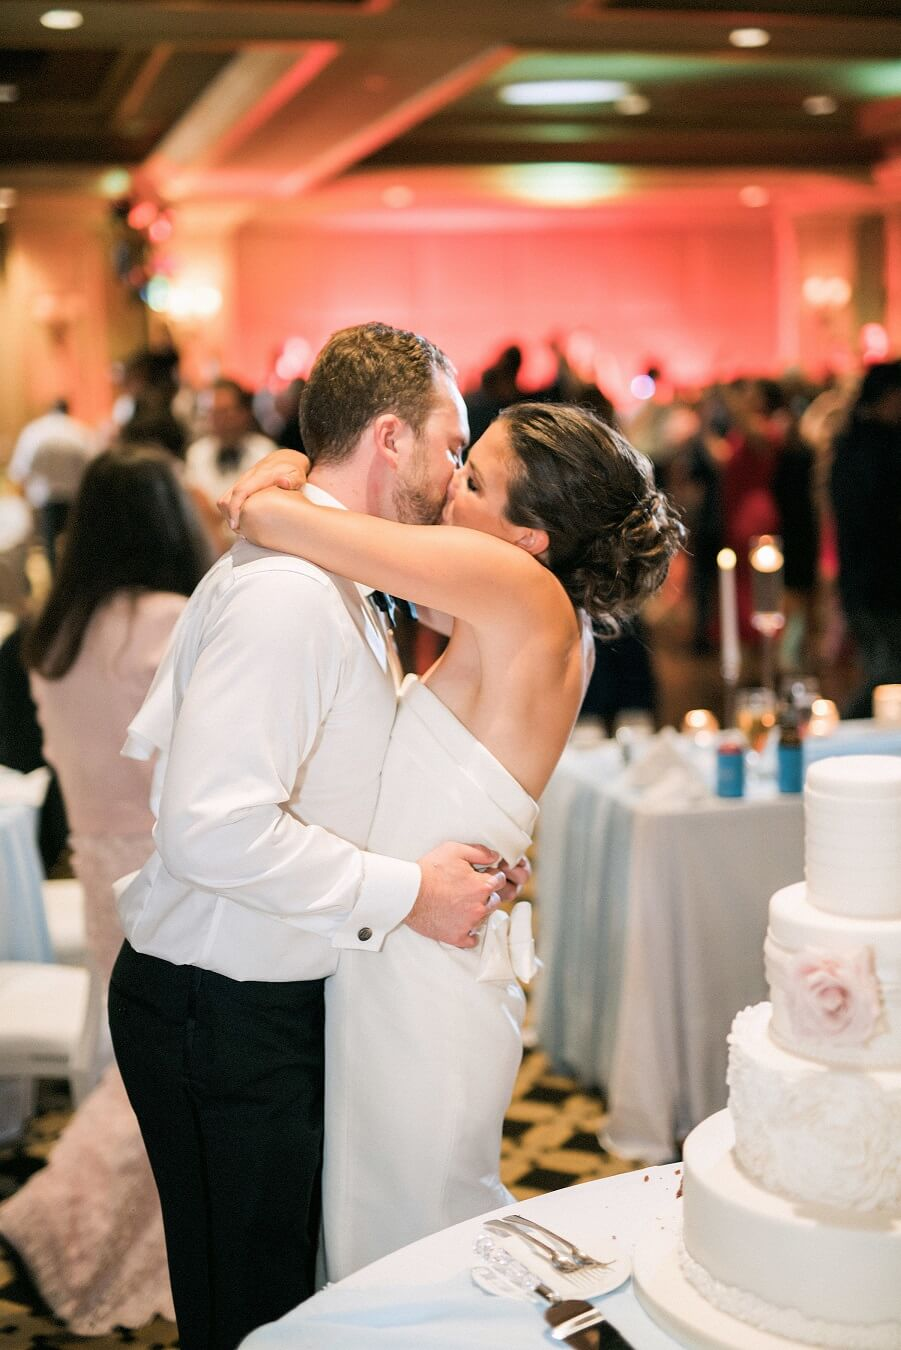 Bride and groom kissing at Wiley Entertainment wedding reception